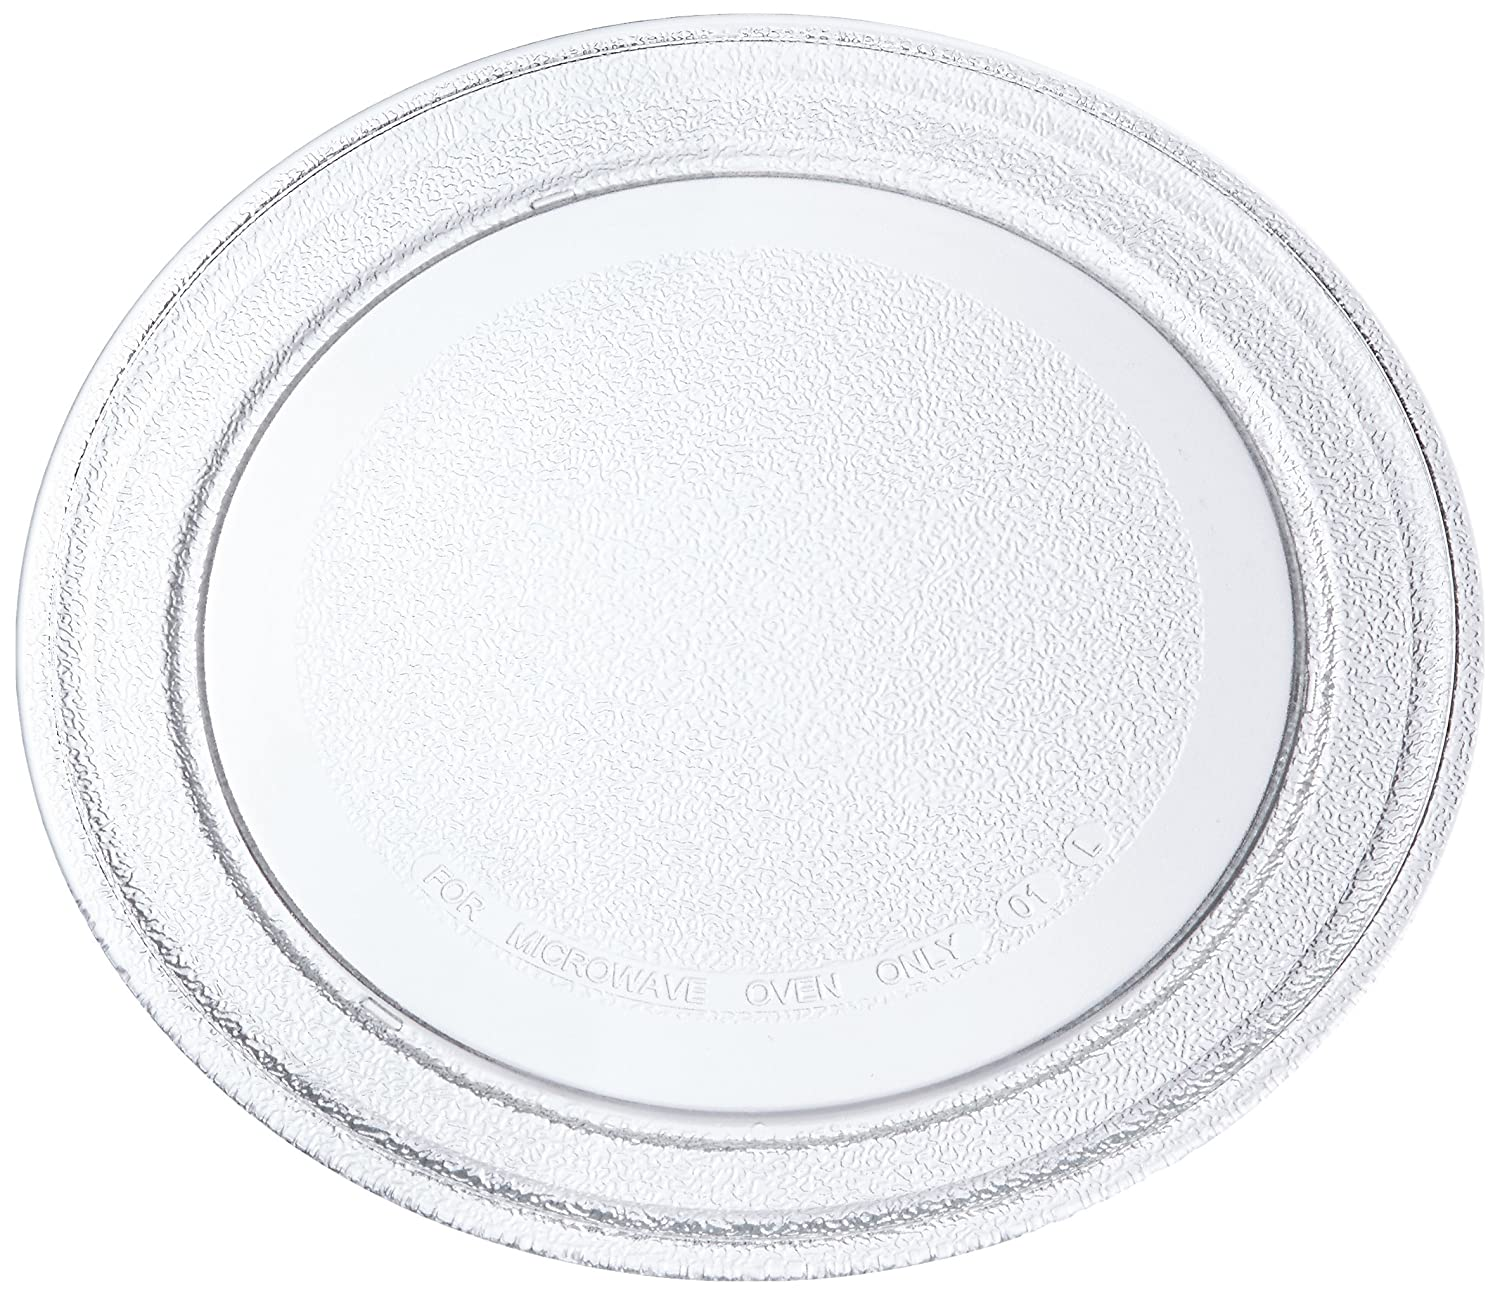 Europart Universal Microwave Turntable Glass Plate with Flat Profile, 245 mm Maddocks 75-UN-03